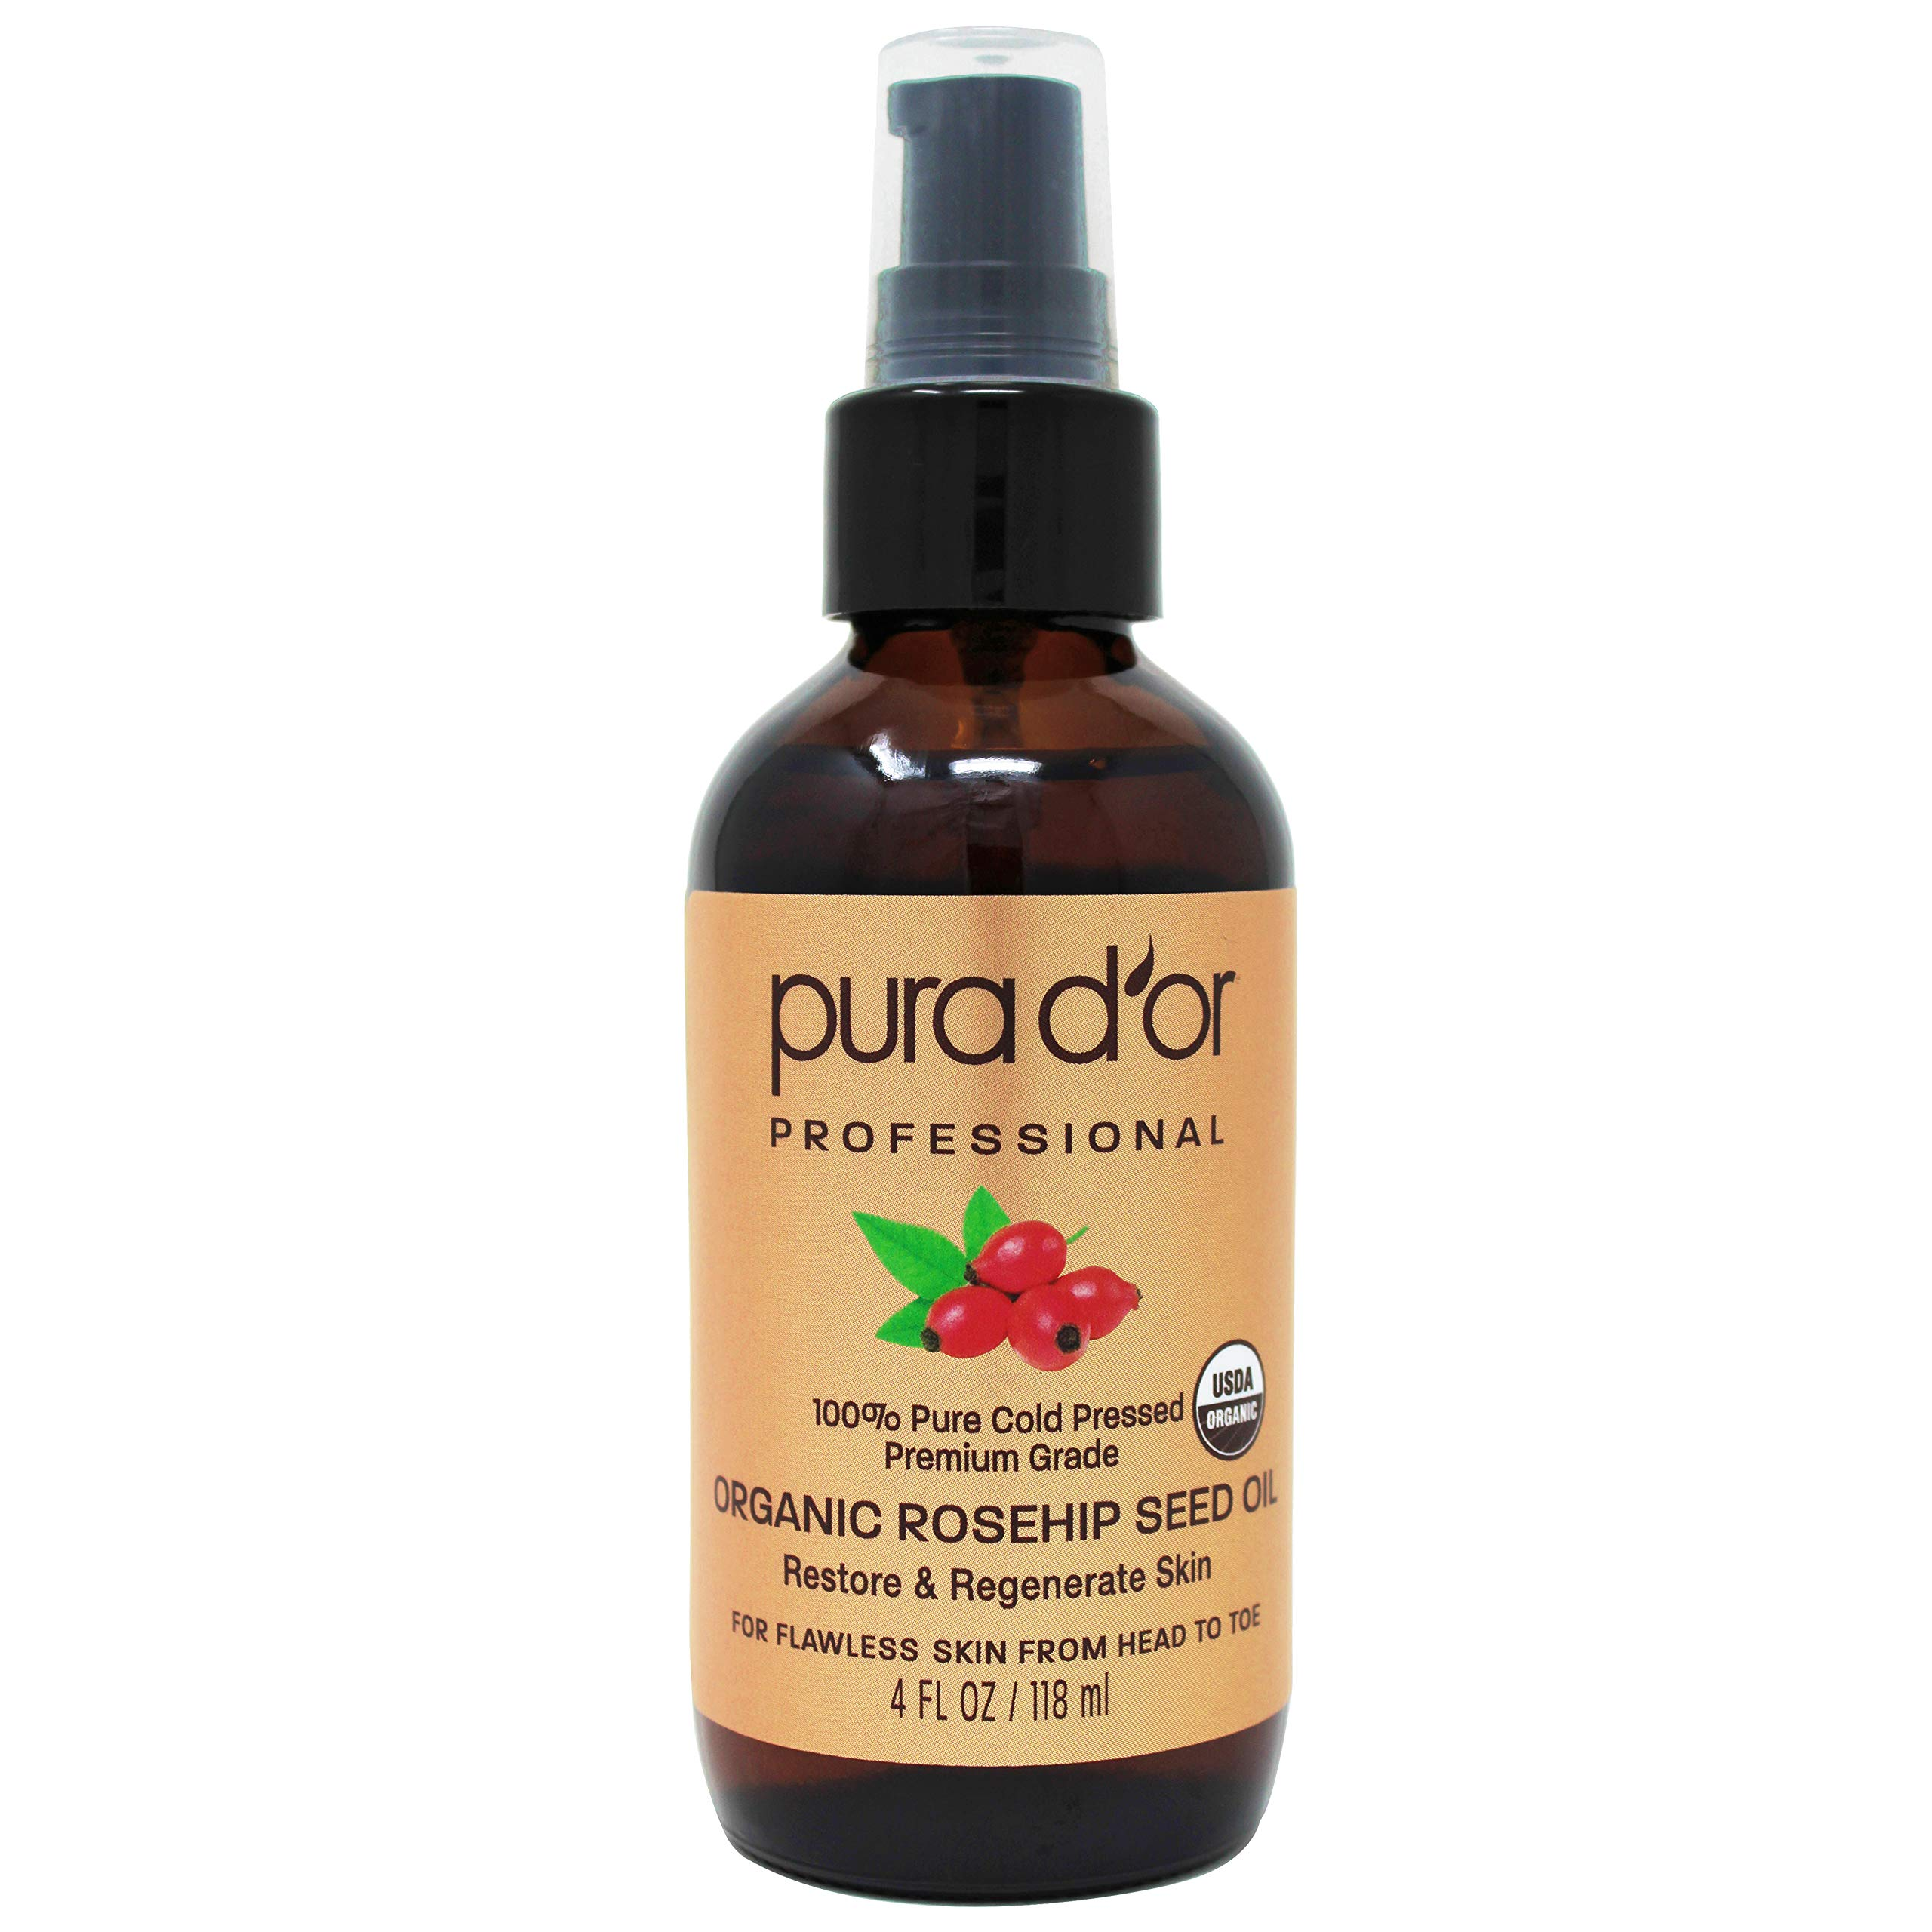 PURA D'OR Organic Rosehip Seed Oil (4oz / 118mL) 100% Pure Cold Pressed USDA Certified Organic, All Natural Anti-Aging Moisturizer Treatment for Face, Hair, Skin, Nails, Men-Women (Packaging may vary)